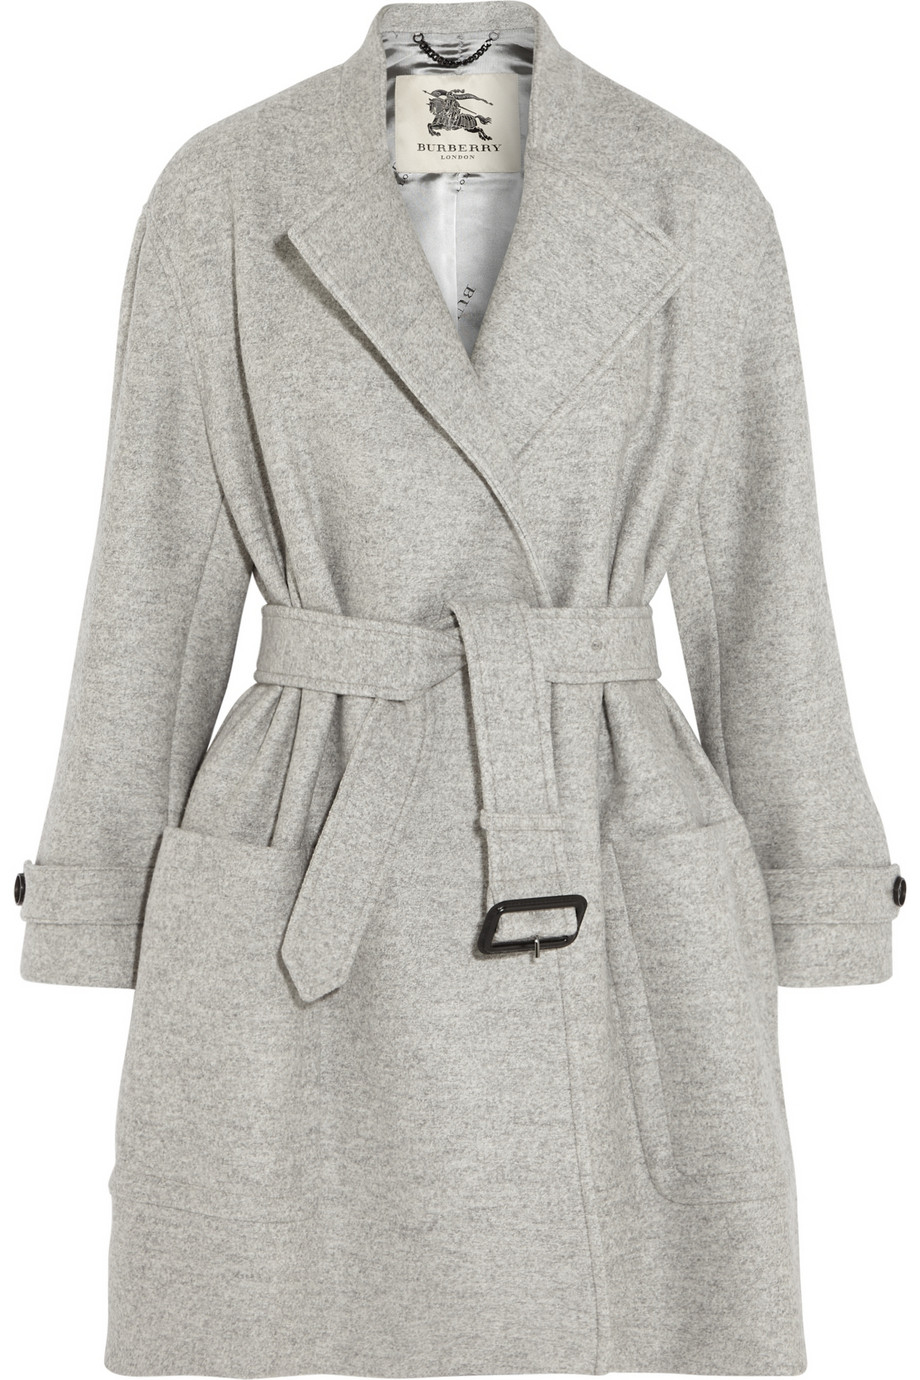 Burberry Belted Wool Coat In Gray Lyst